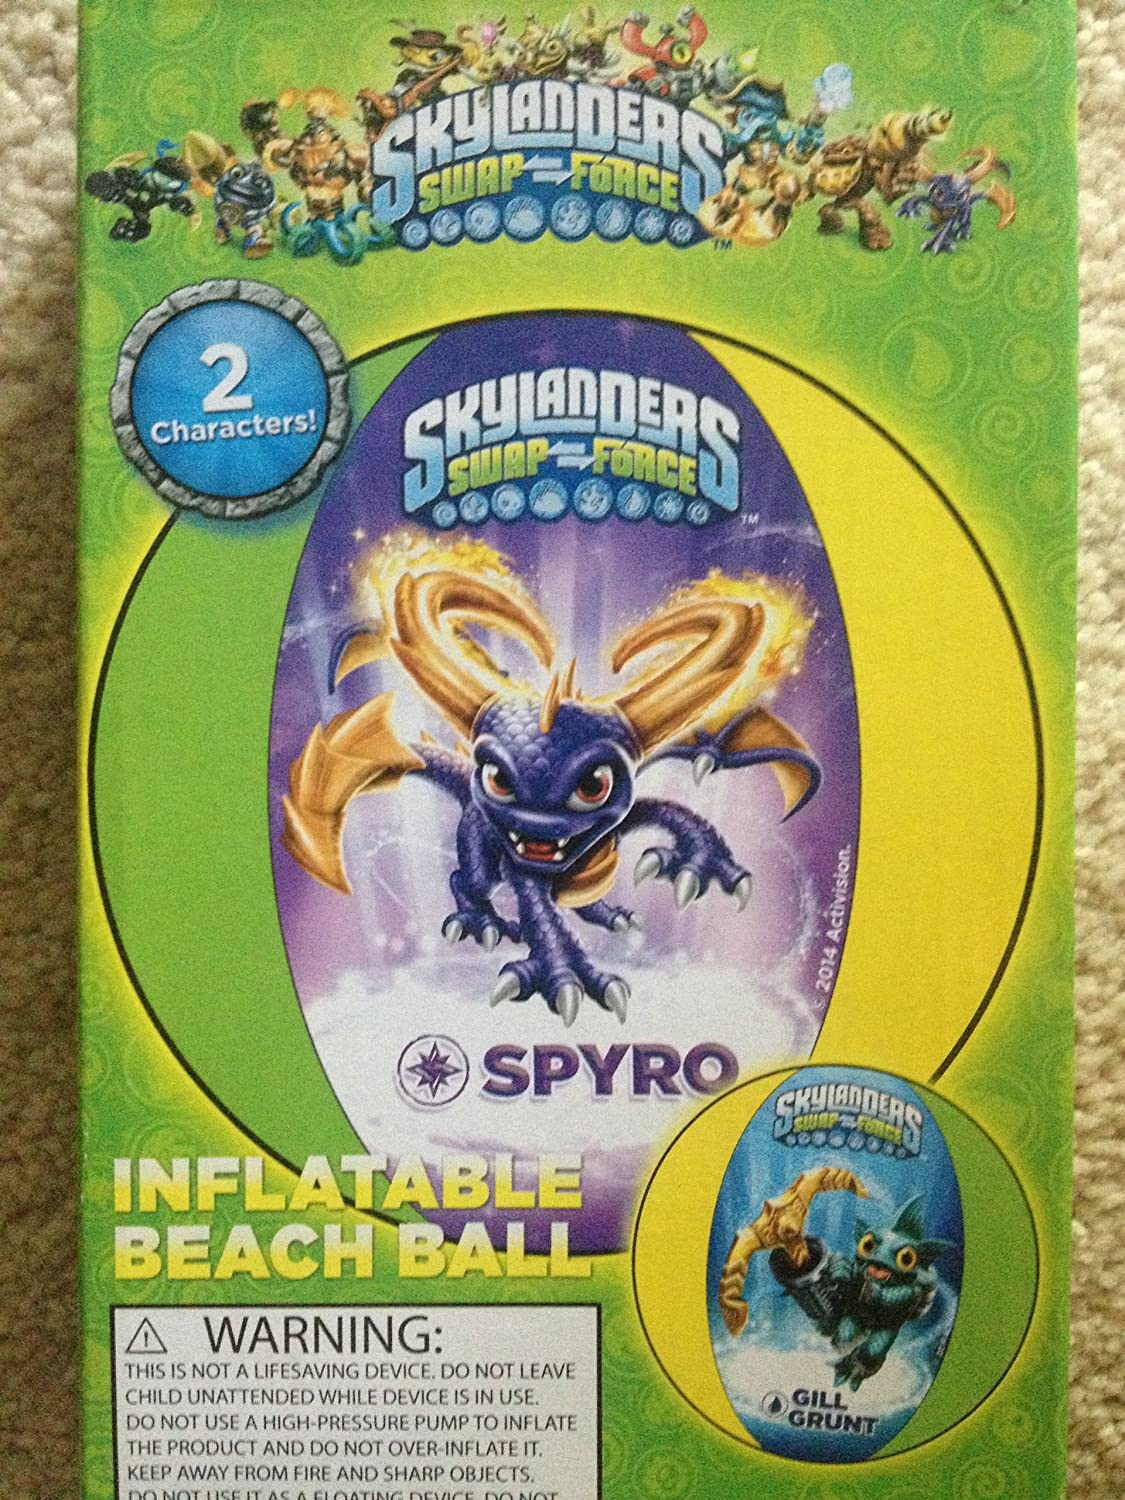 Amazon.com: Skylanders swap-force pelota hinchable de playa ...